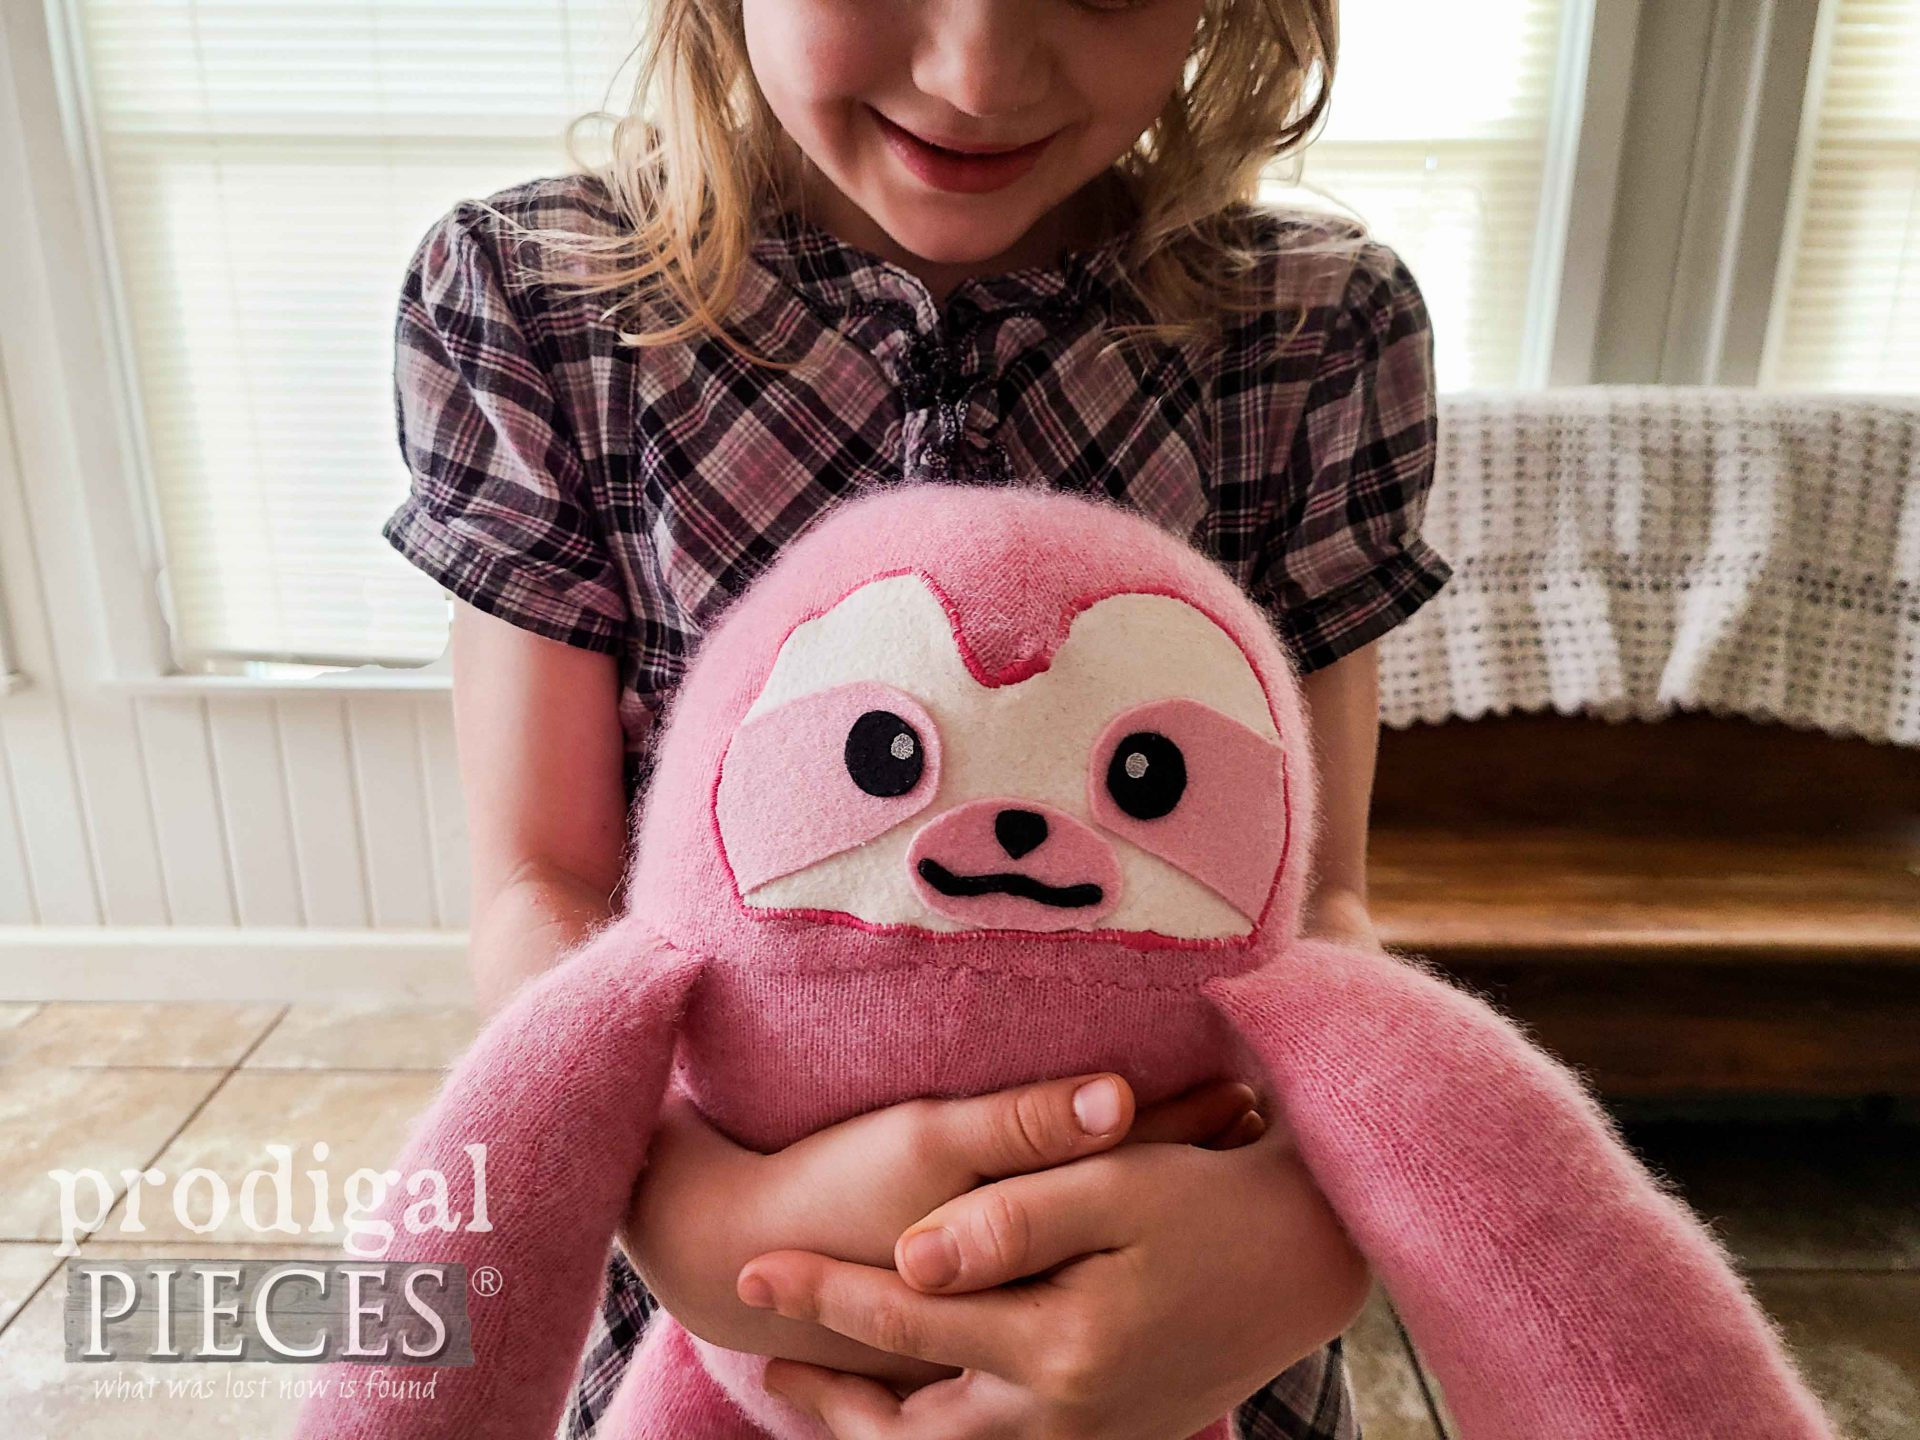 Handmade Upcycled Sweater Sloth Plush Doll Made by Larissa of Prodigal Pieces | prodigalpieces.com #prodigalpieces #toys #diy #sewing #kids #dolls